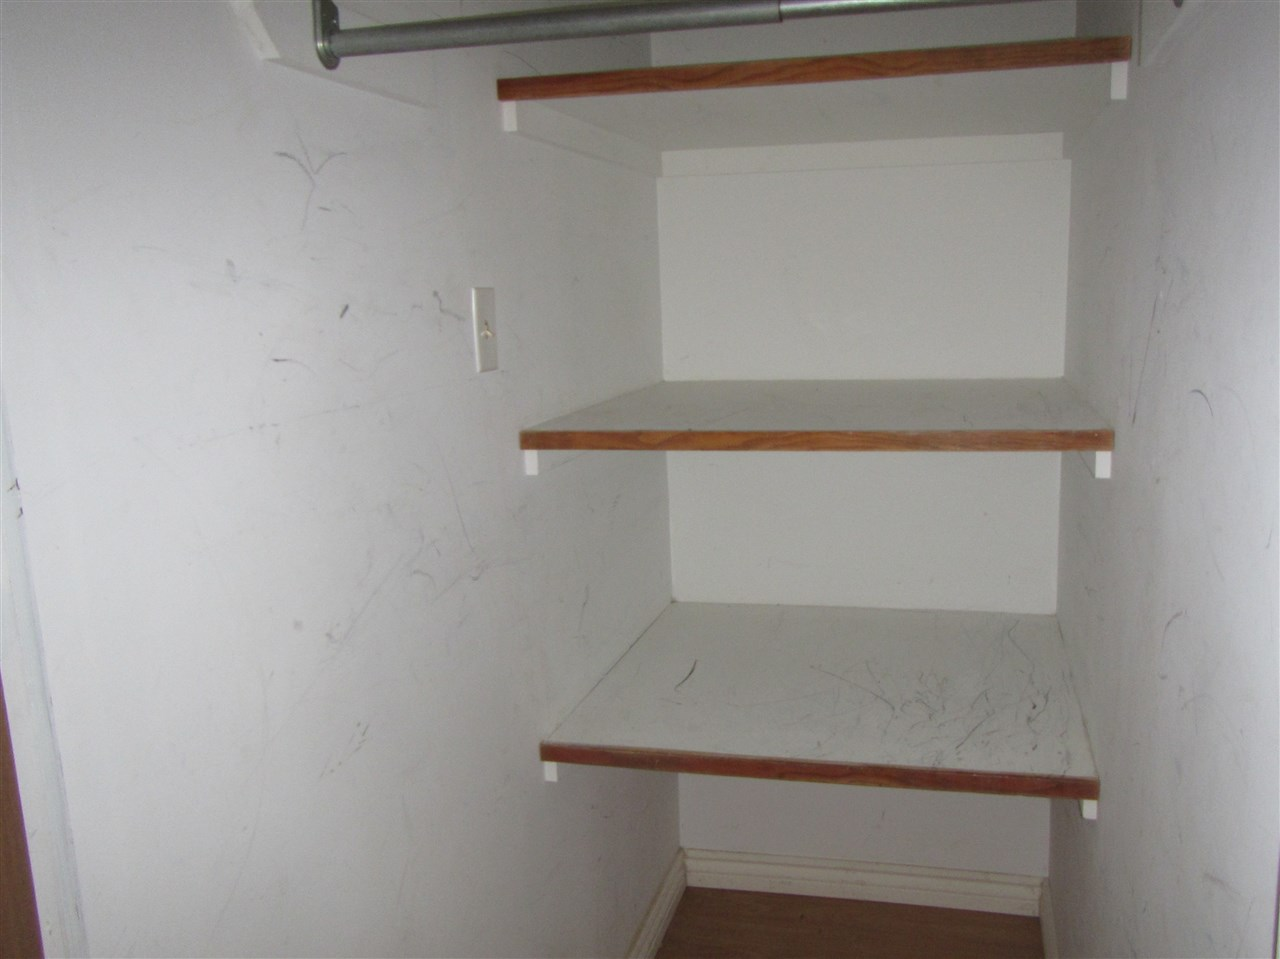 This is one of several basement storage areas